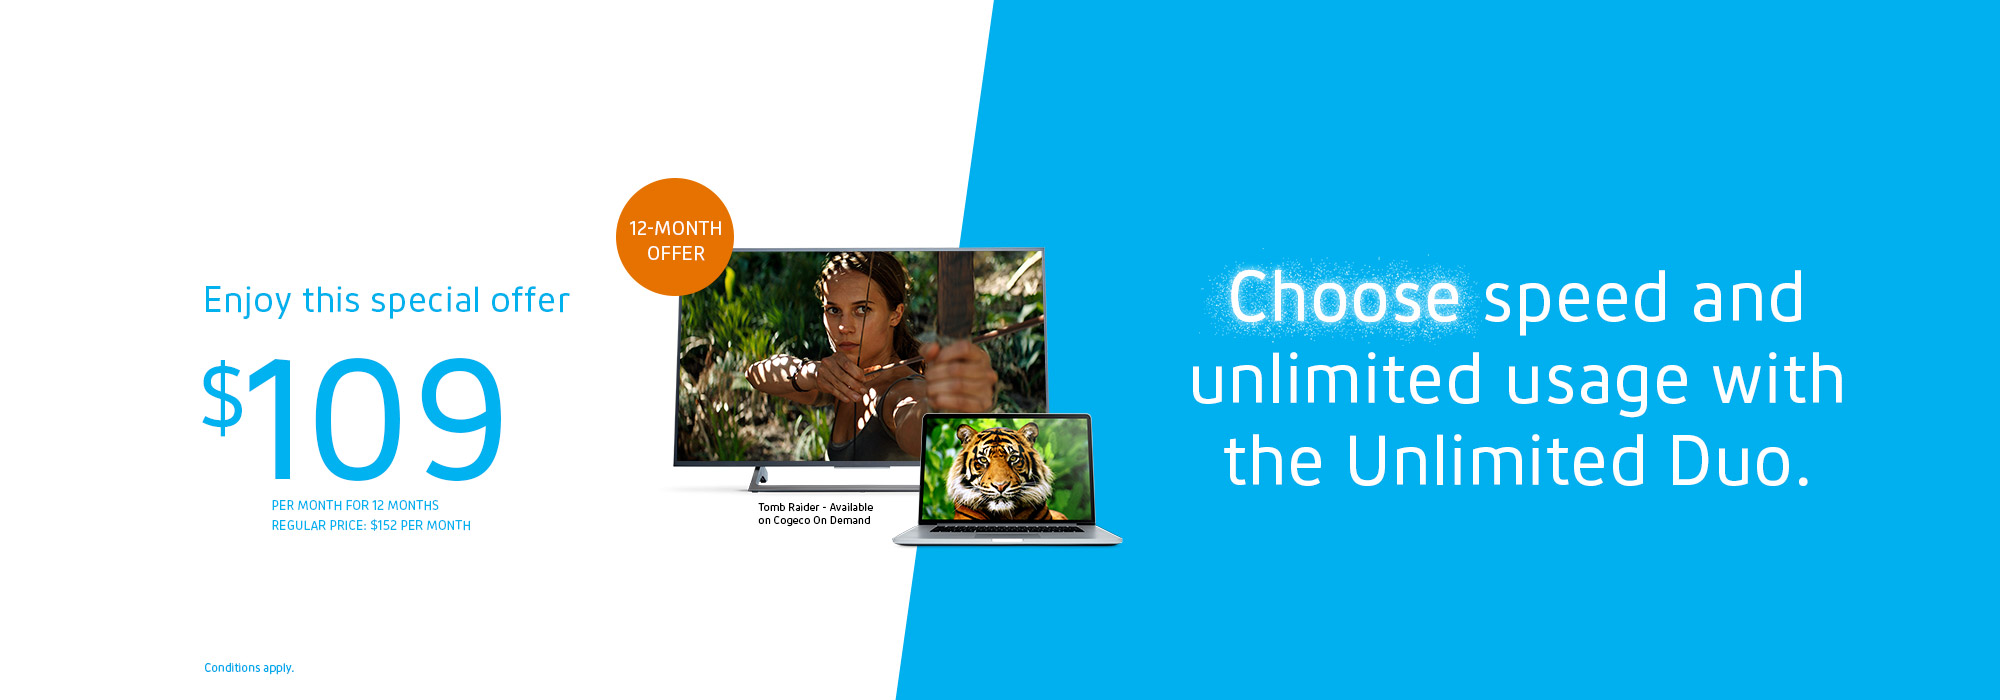 Get unlimited Internet and TV for only: $109/MO. FOR 12 MONTHS Regular price: $152/MO.